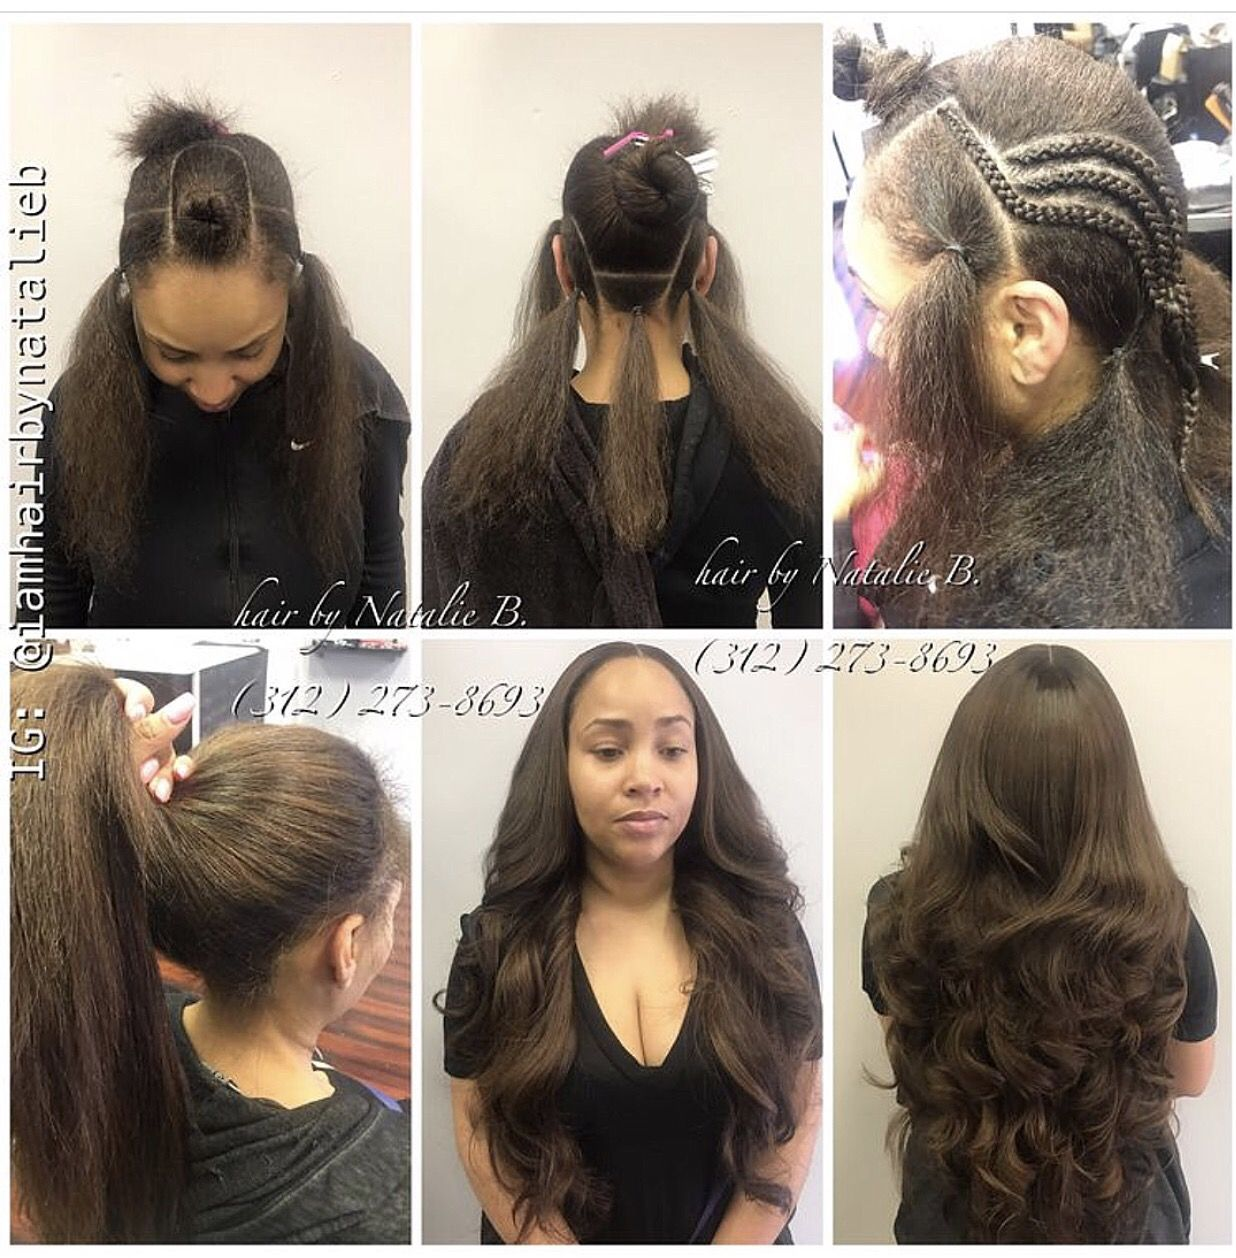 Have You Always Wanted A Sew In That Can Be Worn In A Natural